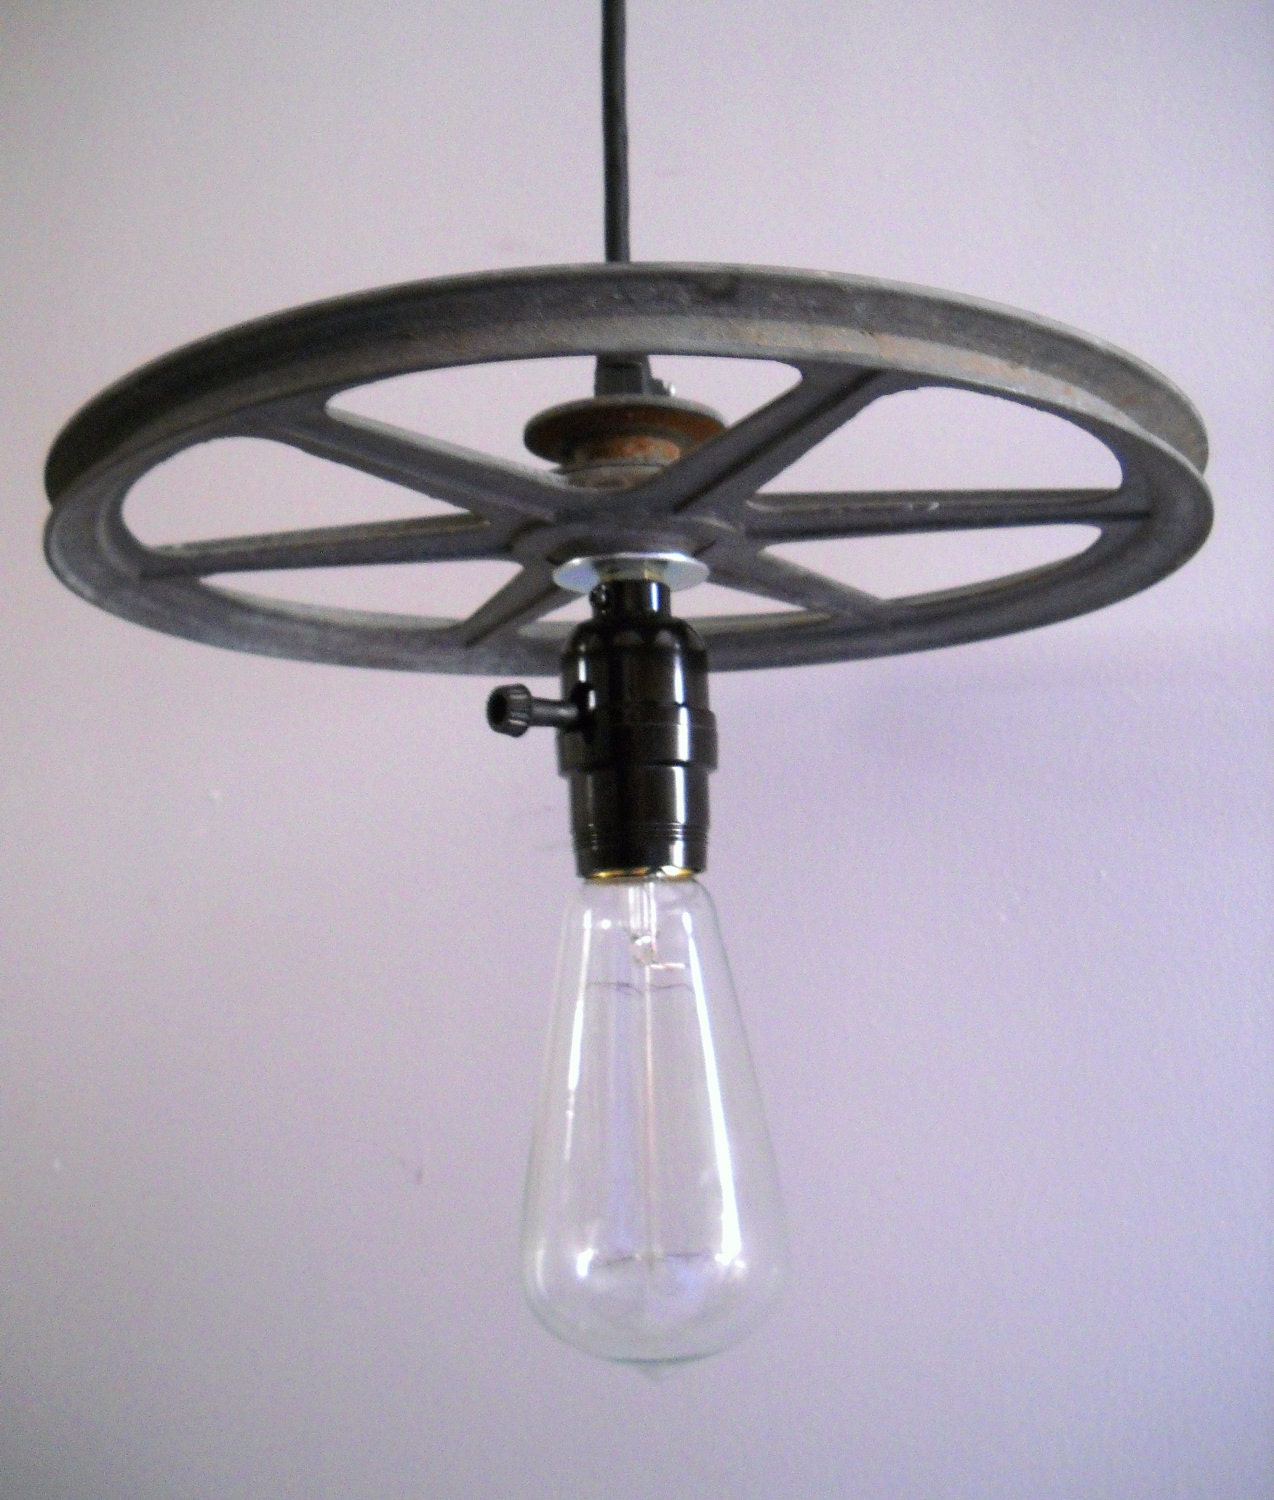 Items Similar To Rustic Light Pendant Lighting Pulley On Etsy: Industrial Pendant Light Hanging Vintage Metal Steampunk